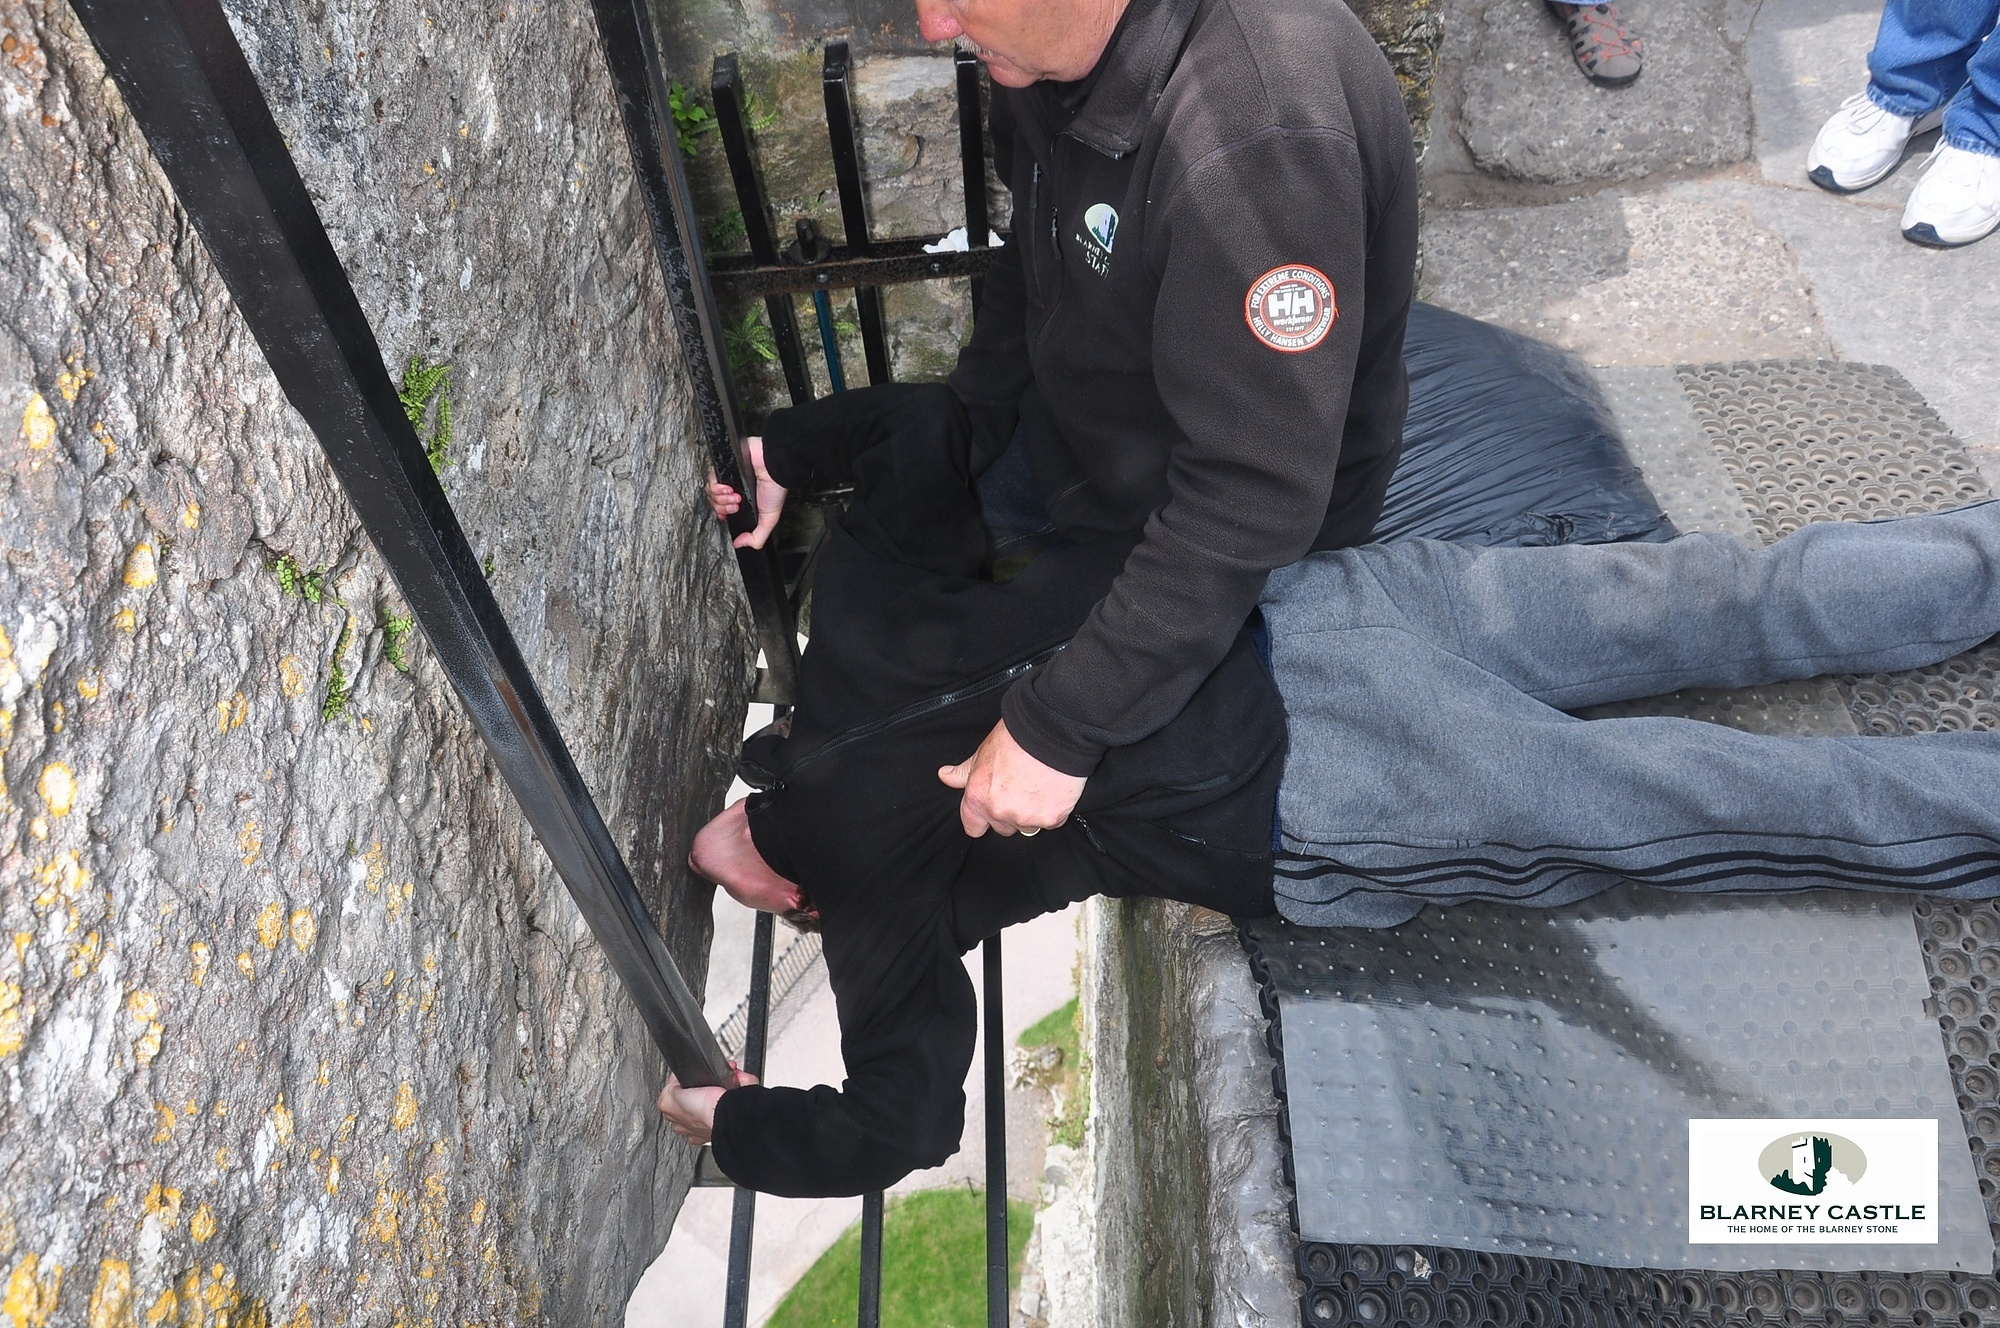 Kissing the Blarney Stone in County Cork, Republic of Ireland